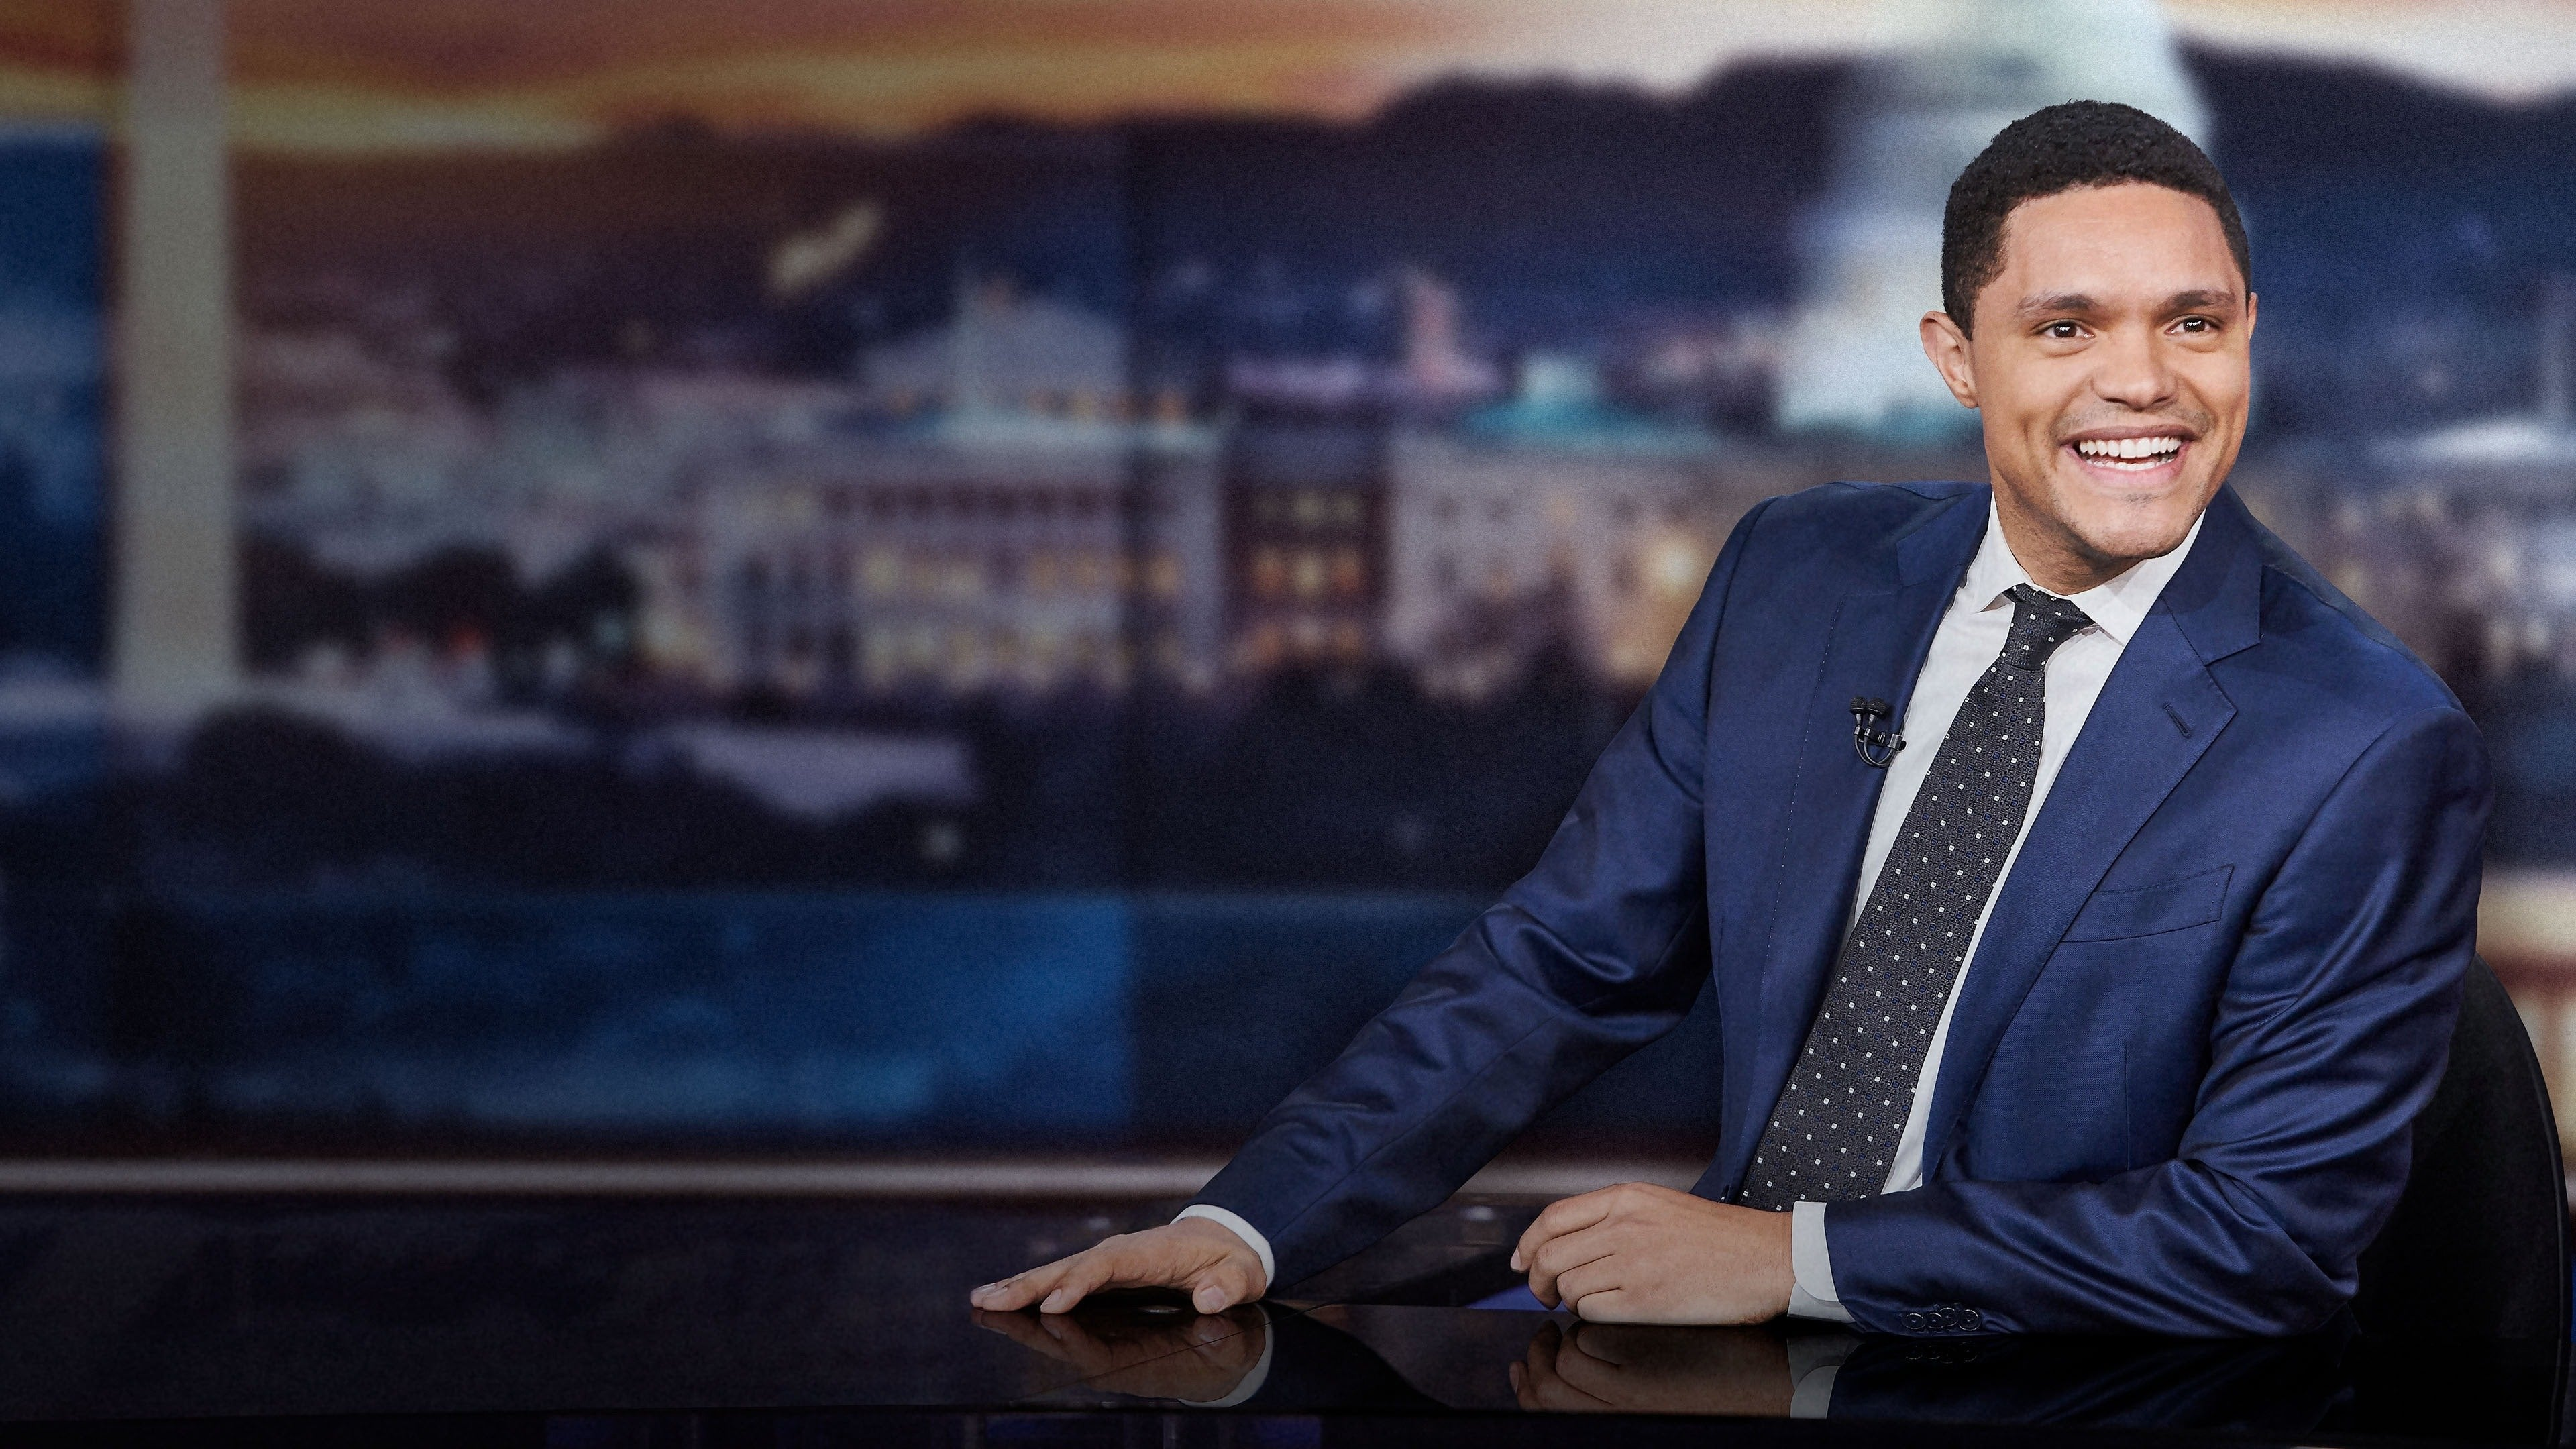 The Daily Show with Trevor Noah - Season 10